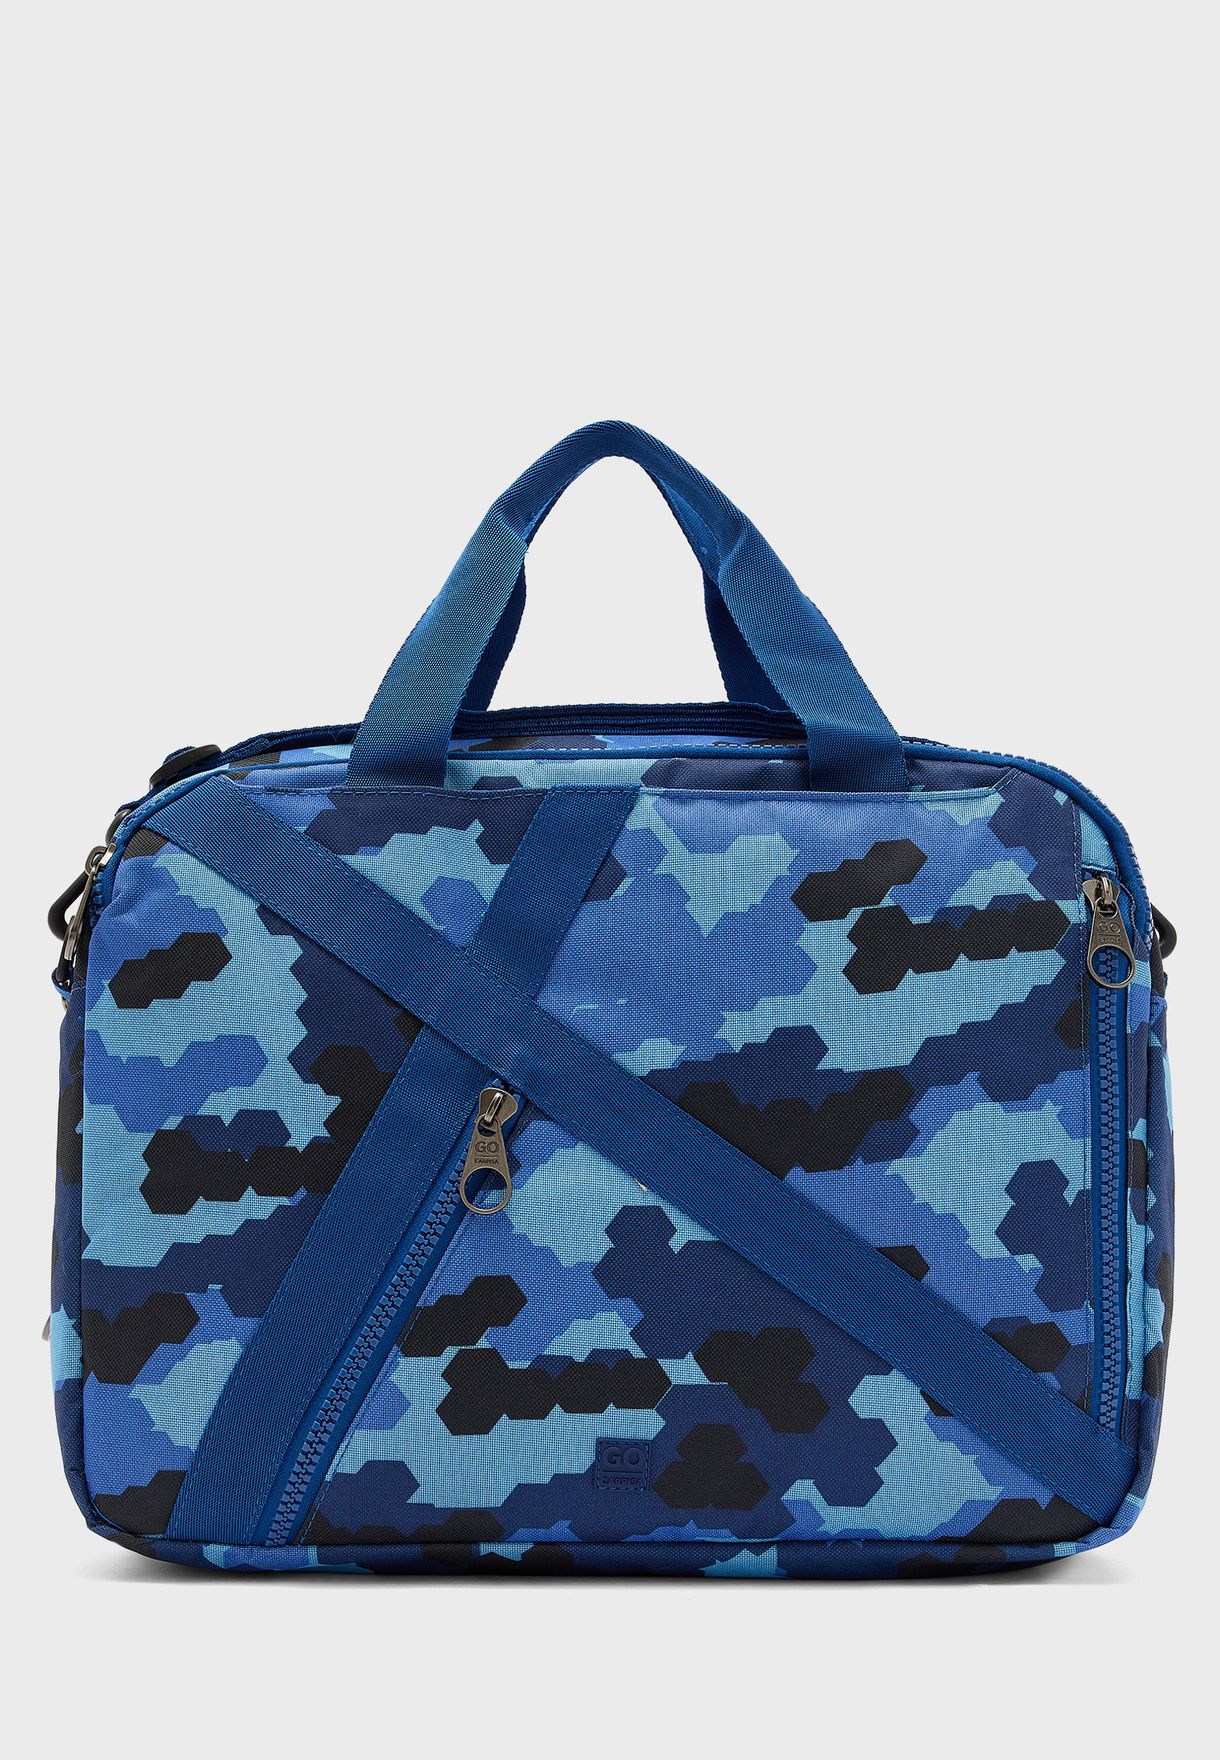 Camo Messenger Bag